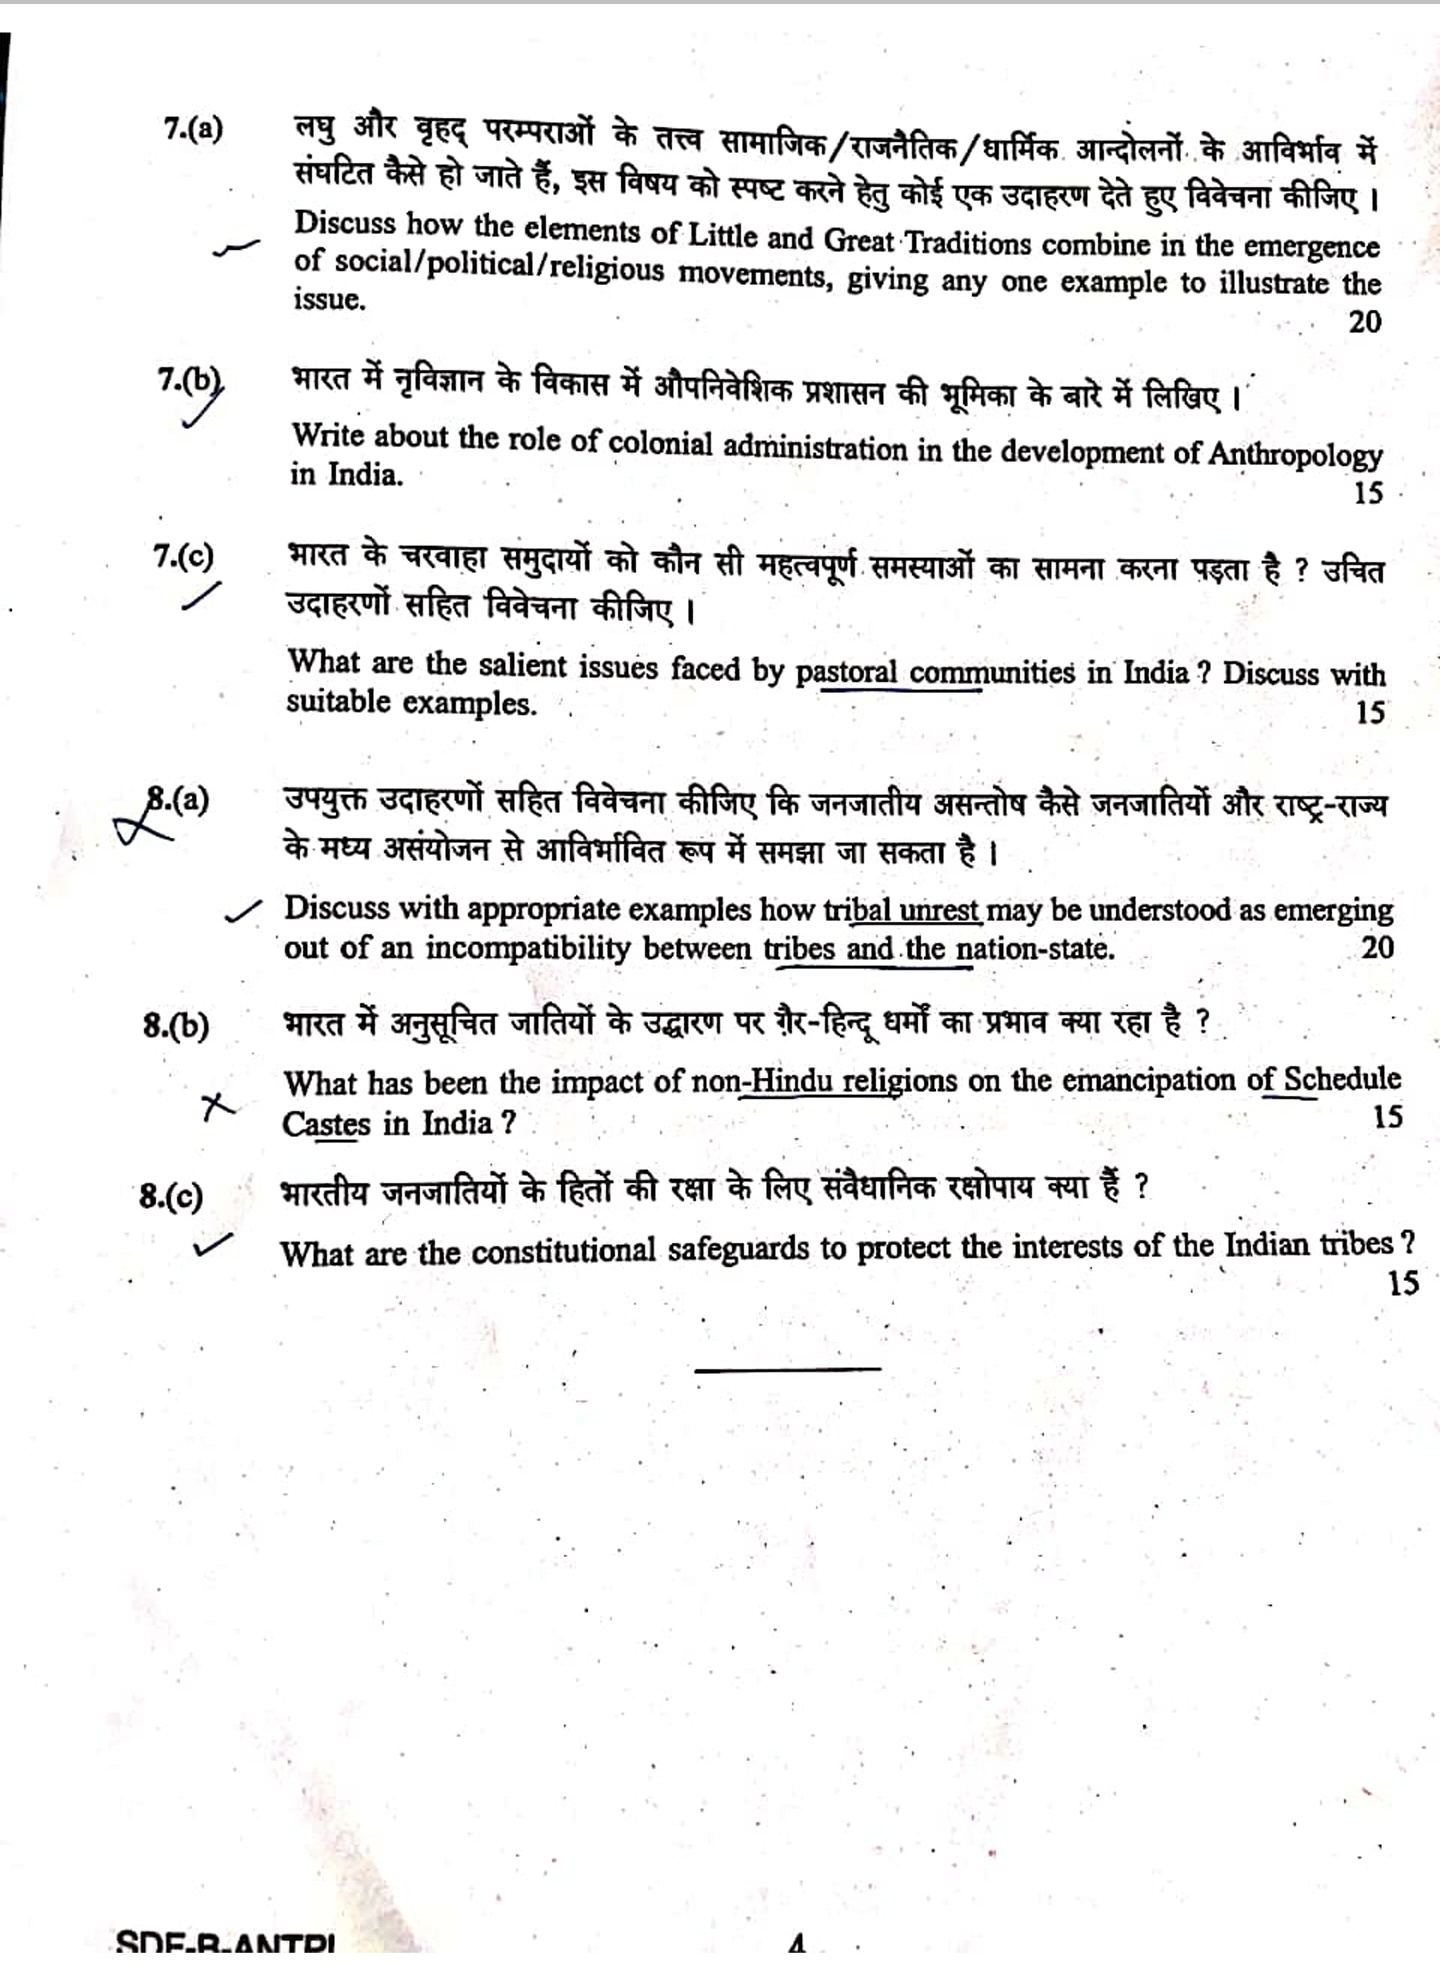 Essay on importance of moral values in student life